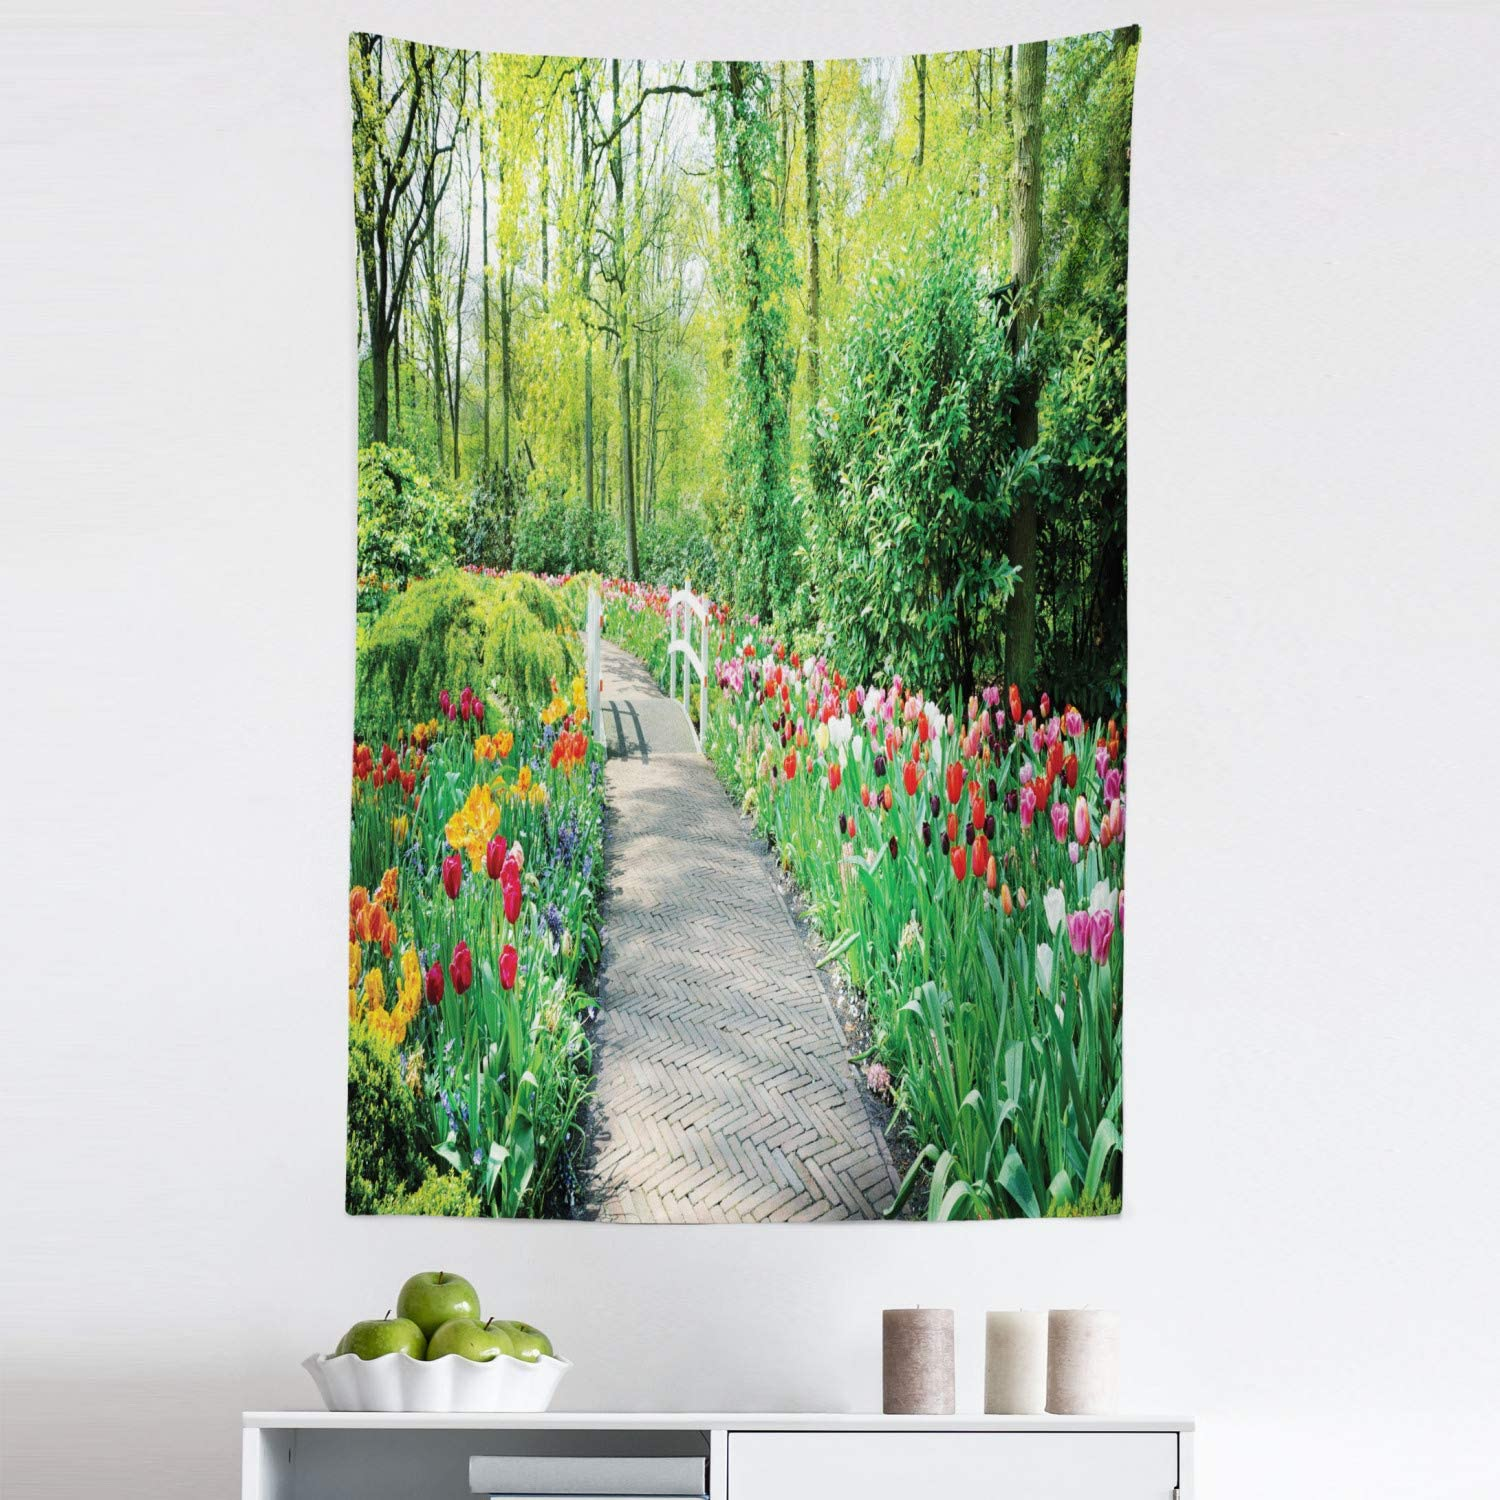 Lunarable Garden Tapestry, Tulips in Keukenhof Gardens and Path Along Colorful Flowers Trees Nature Landscape, Fabric Wall Hanging Decor for Bedroom Living Room Dorm, 30